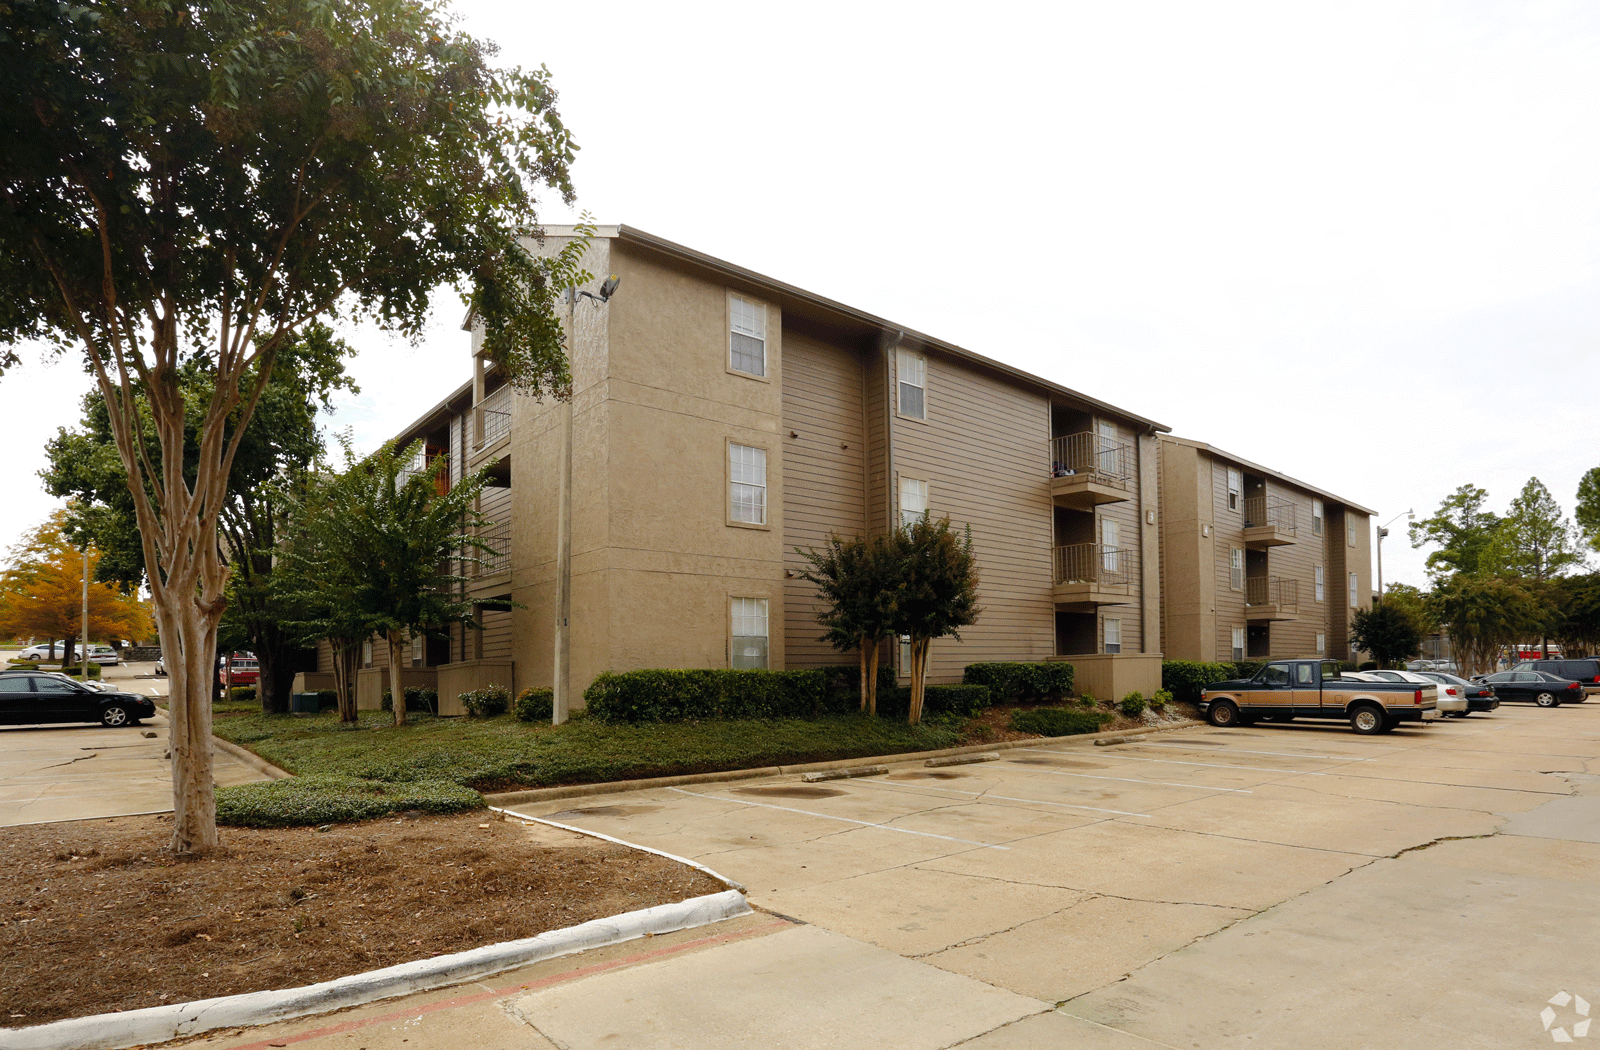 Admirable The Advantages Apartments Apartments In Jackson Ms Download Free Architecture Designs Rallybritishbridgeorg